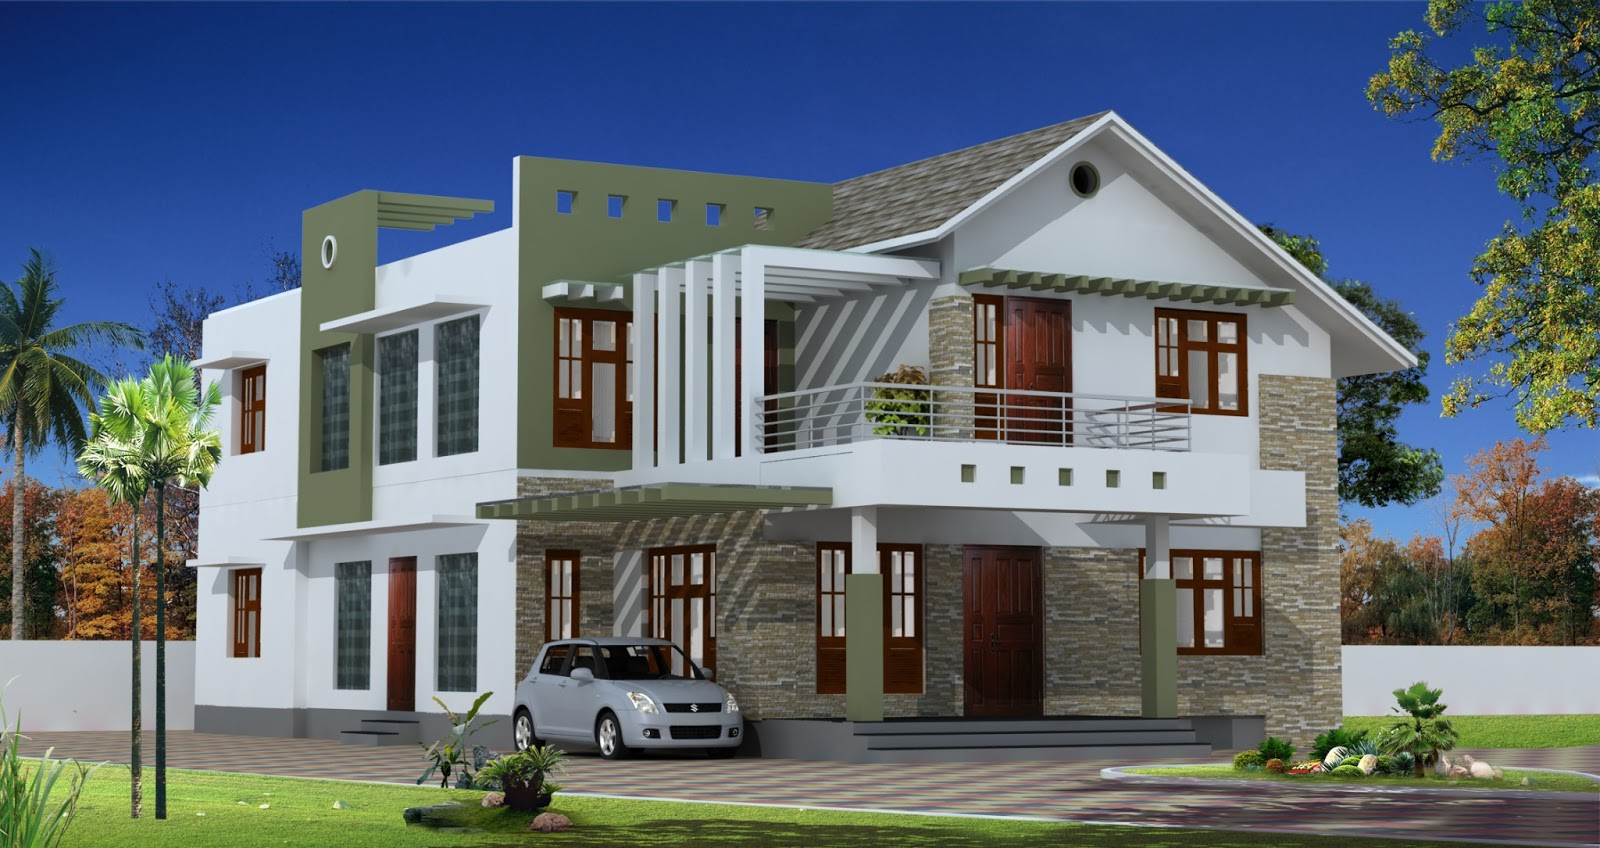 Latest home designs original home designs for Home design exterior ideas in india